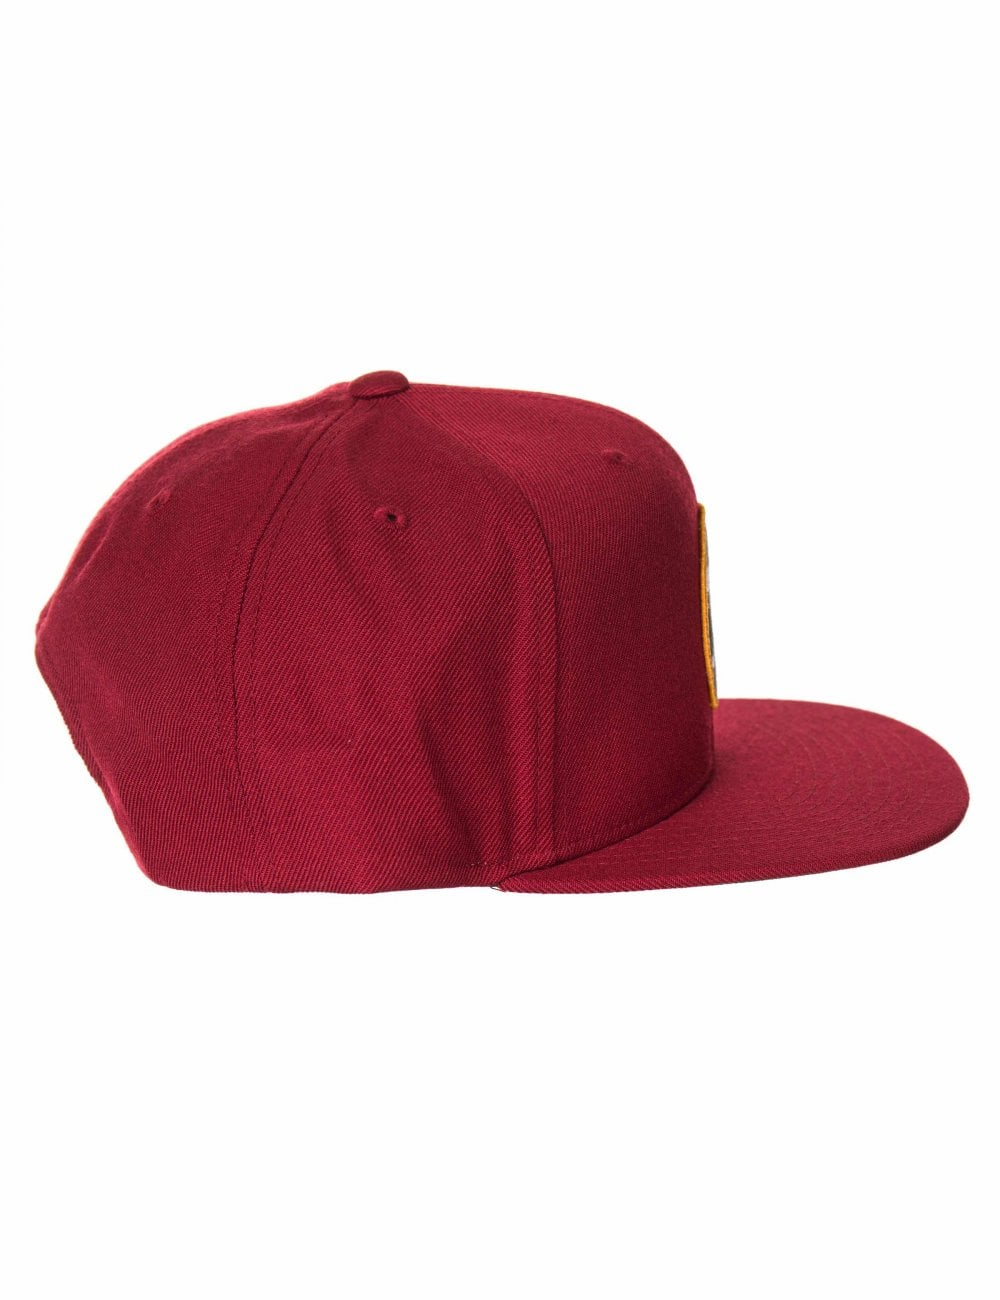 26042863867e5 Brixton Wheeler Snapback Cap - Burgundy - Hat Shop from Fat Buddha ...